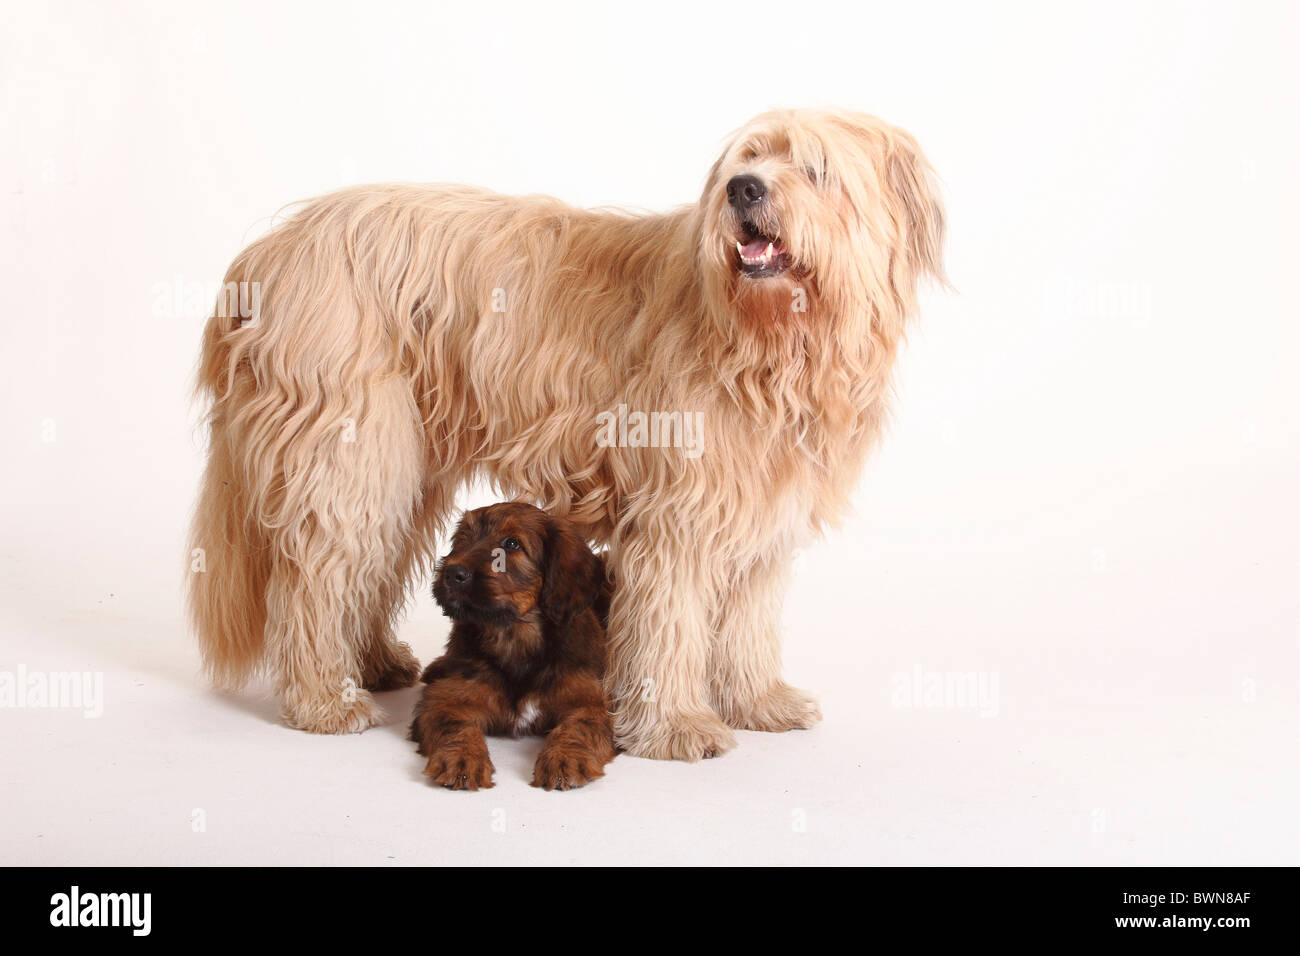 Mixed Breed Dog (Briard crossbred) and Briard, puppy, 9 weeks / Berger de Brie - Stock Image